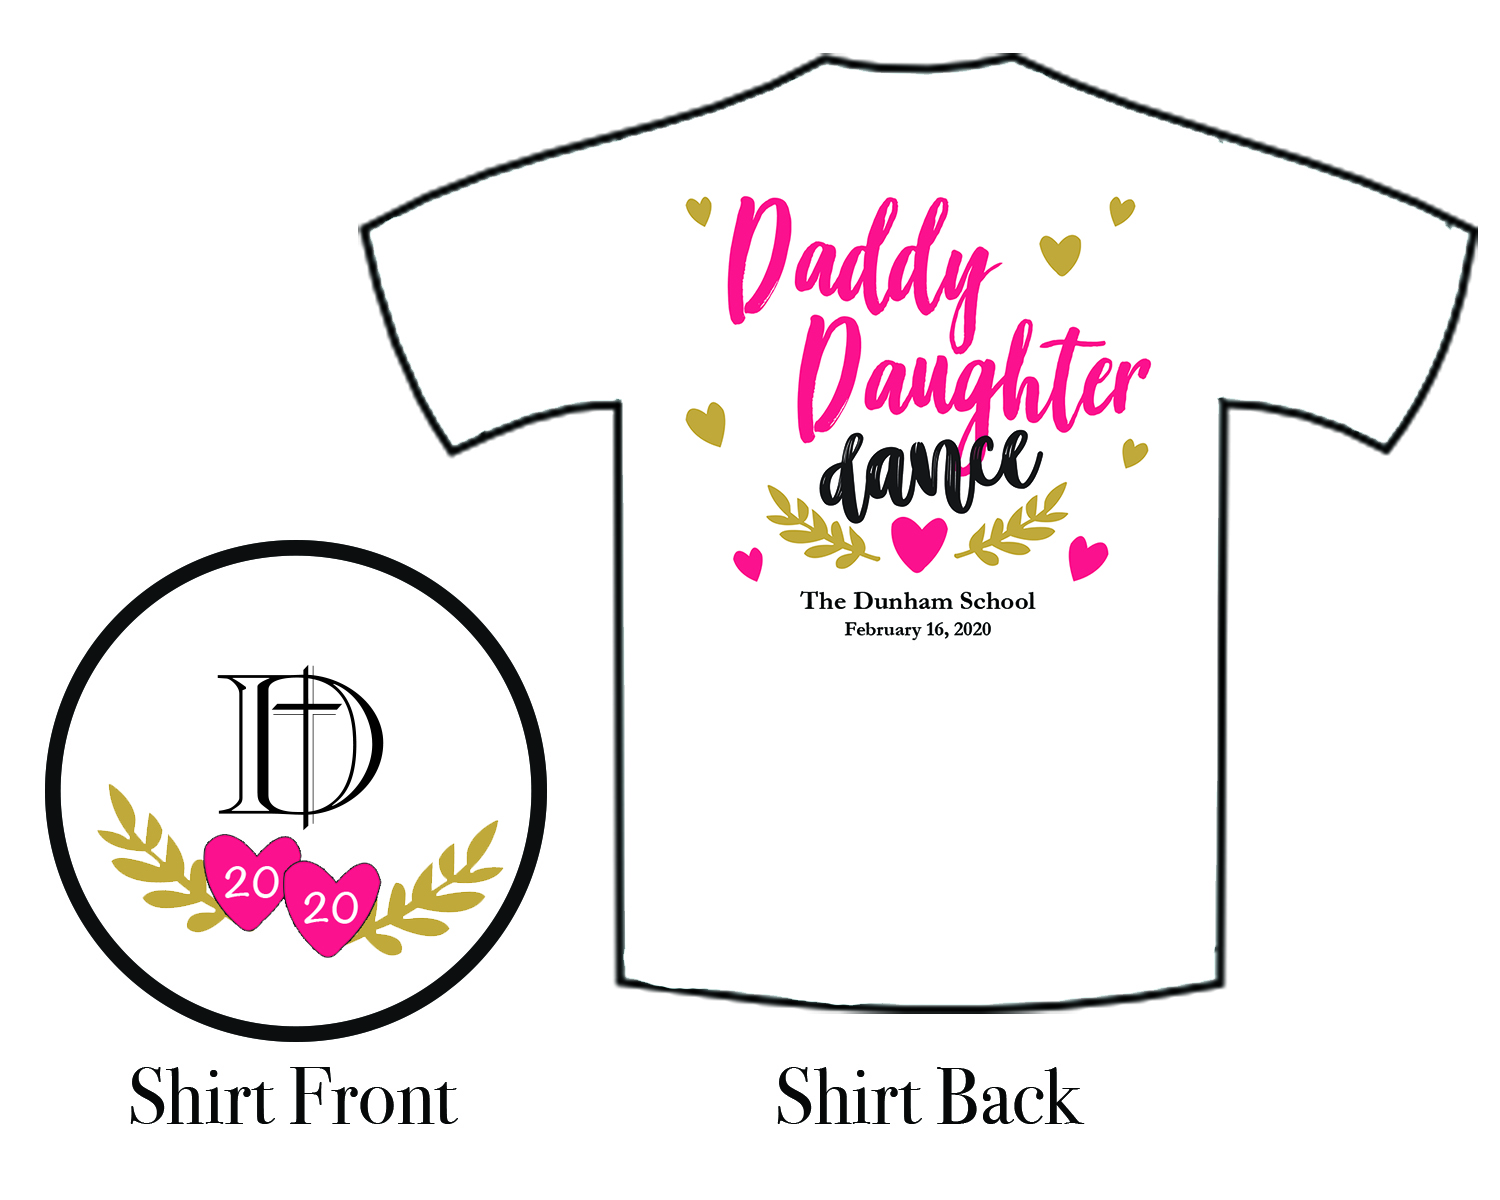 2020 Daddy Daughter Dance T-shirt image